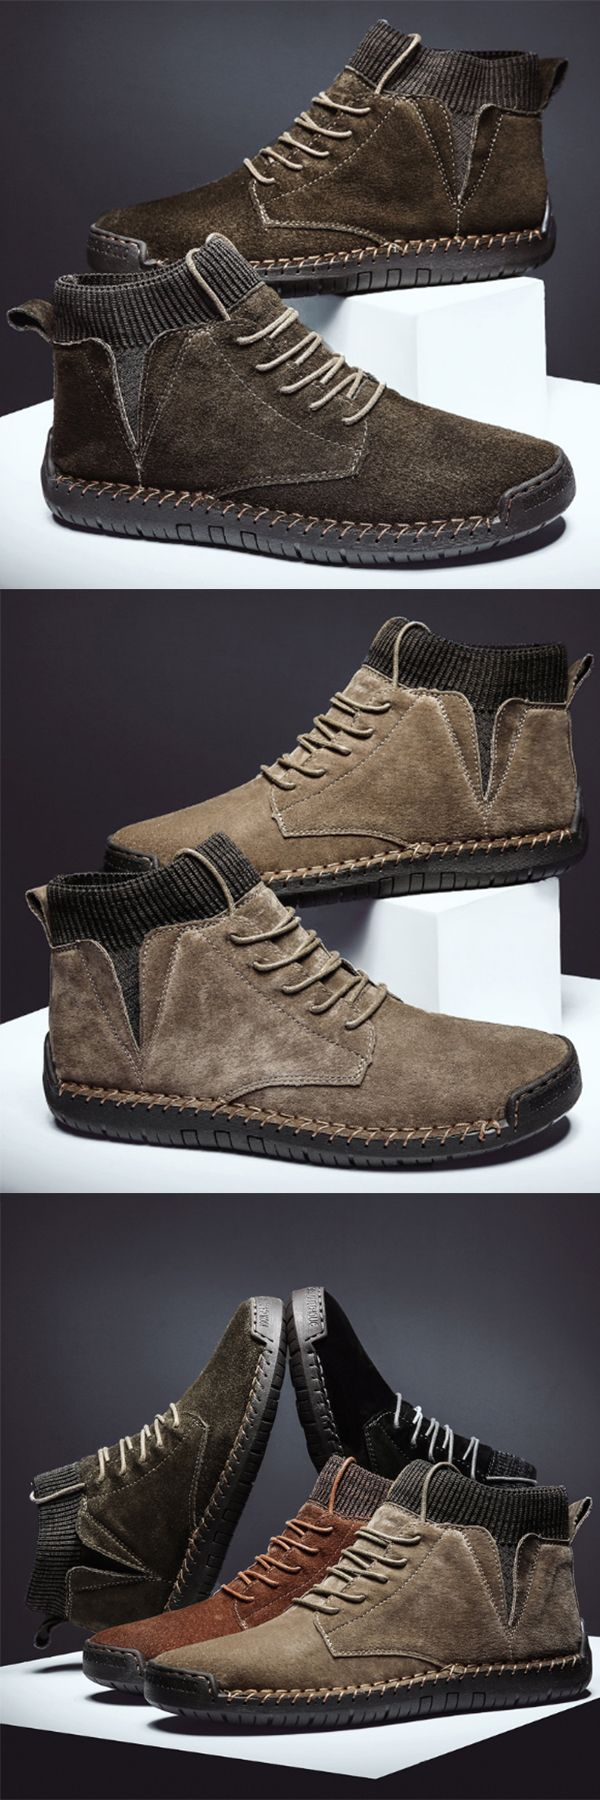 Men Suede Fabric Splicing Hand Stitching Non Slip Casual Boots#Boots#Casual #Thanksgiving